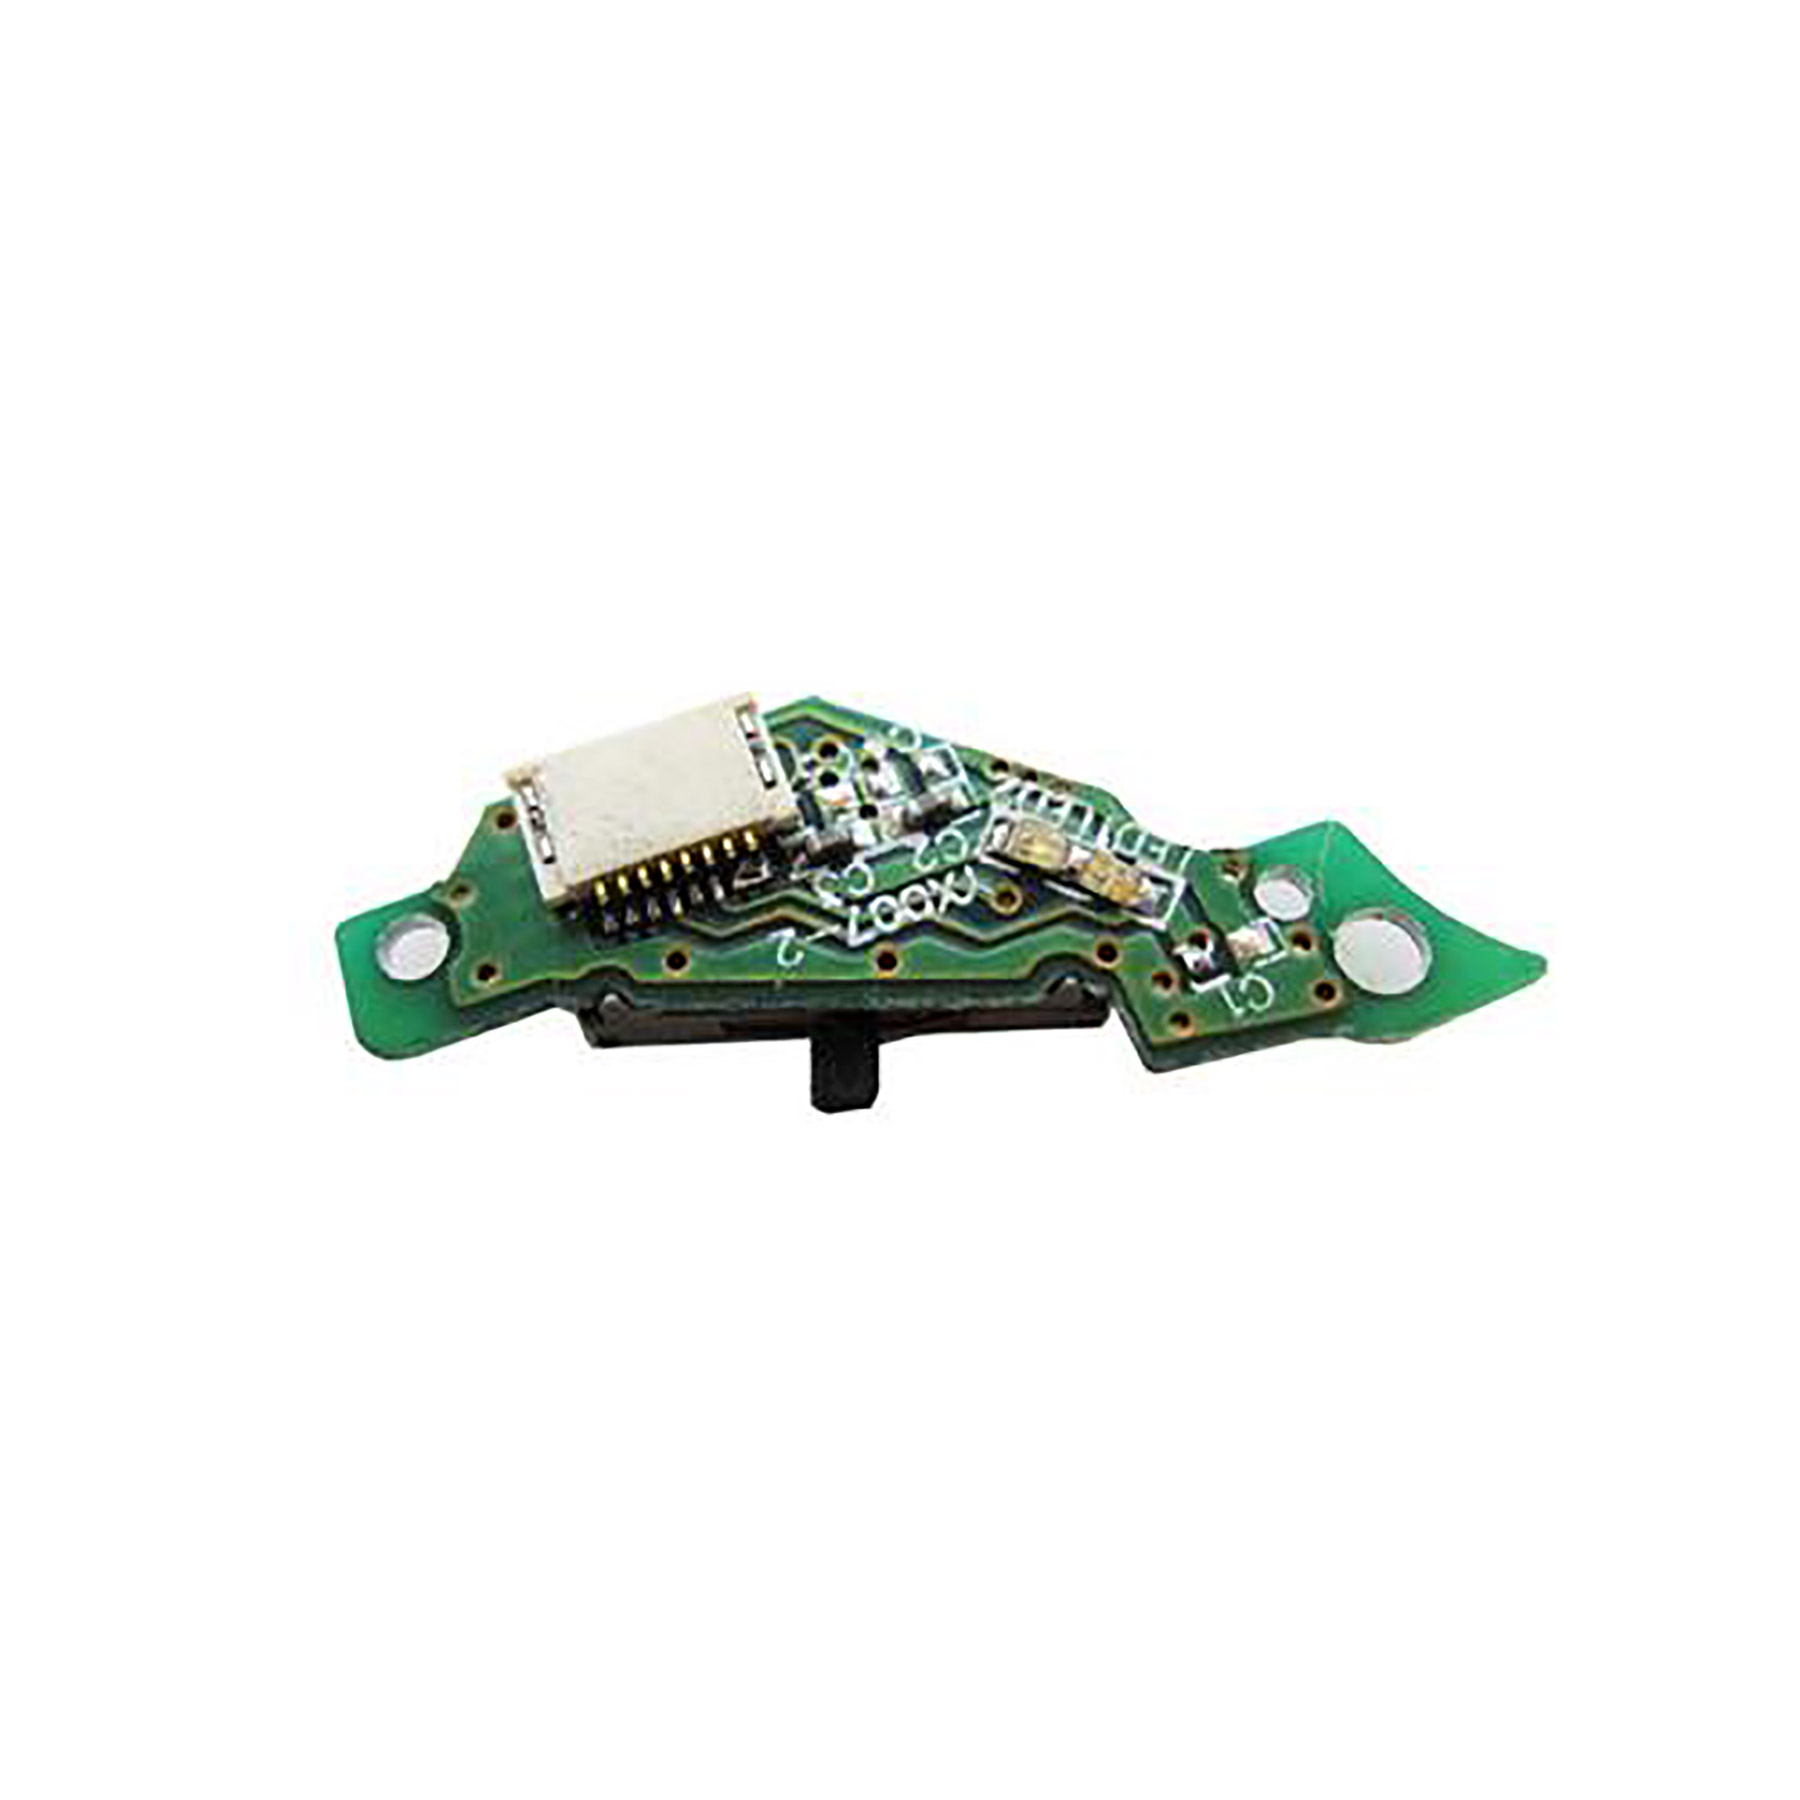 PSP 2000 – Repair Part – Circuit Board With Power Switch (Third Party)